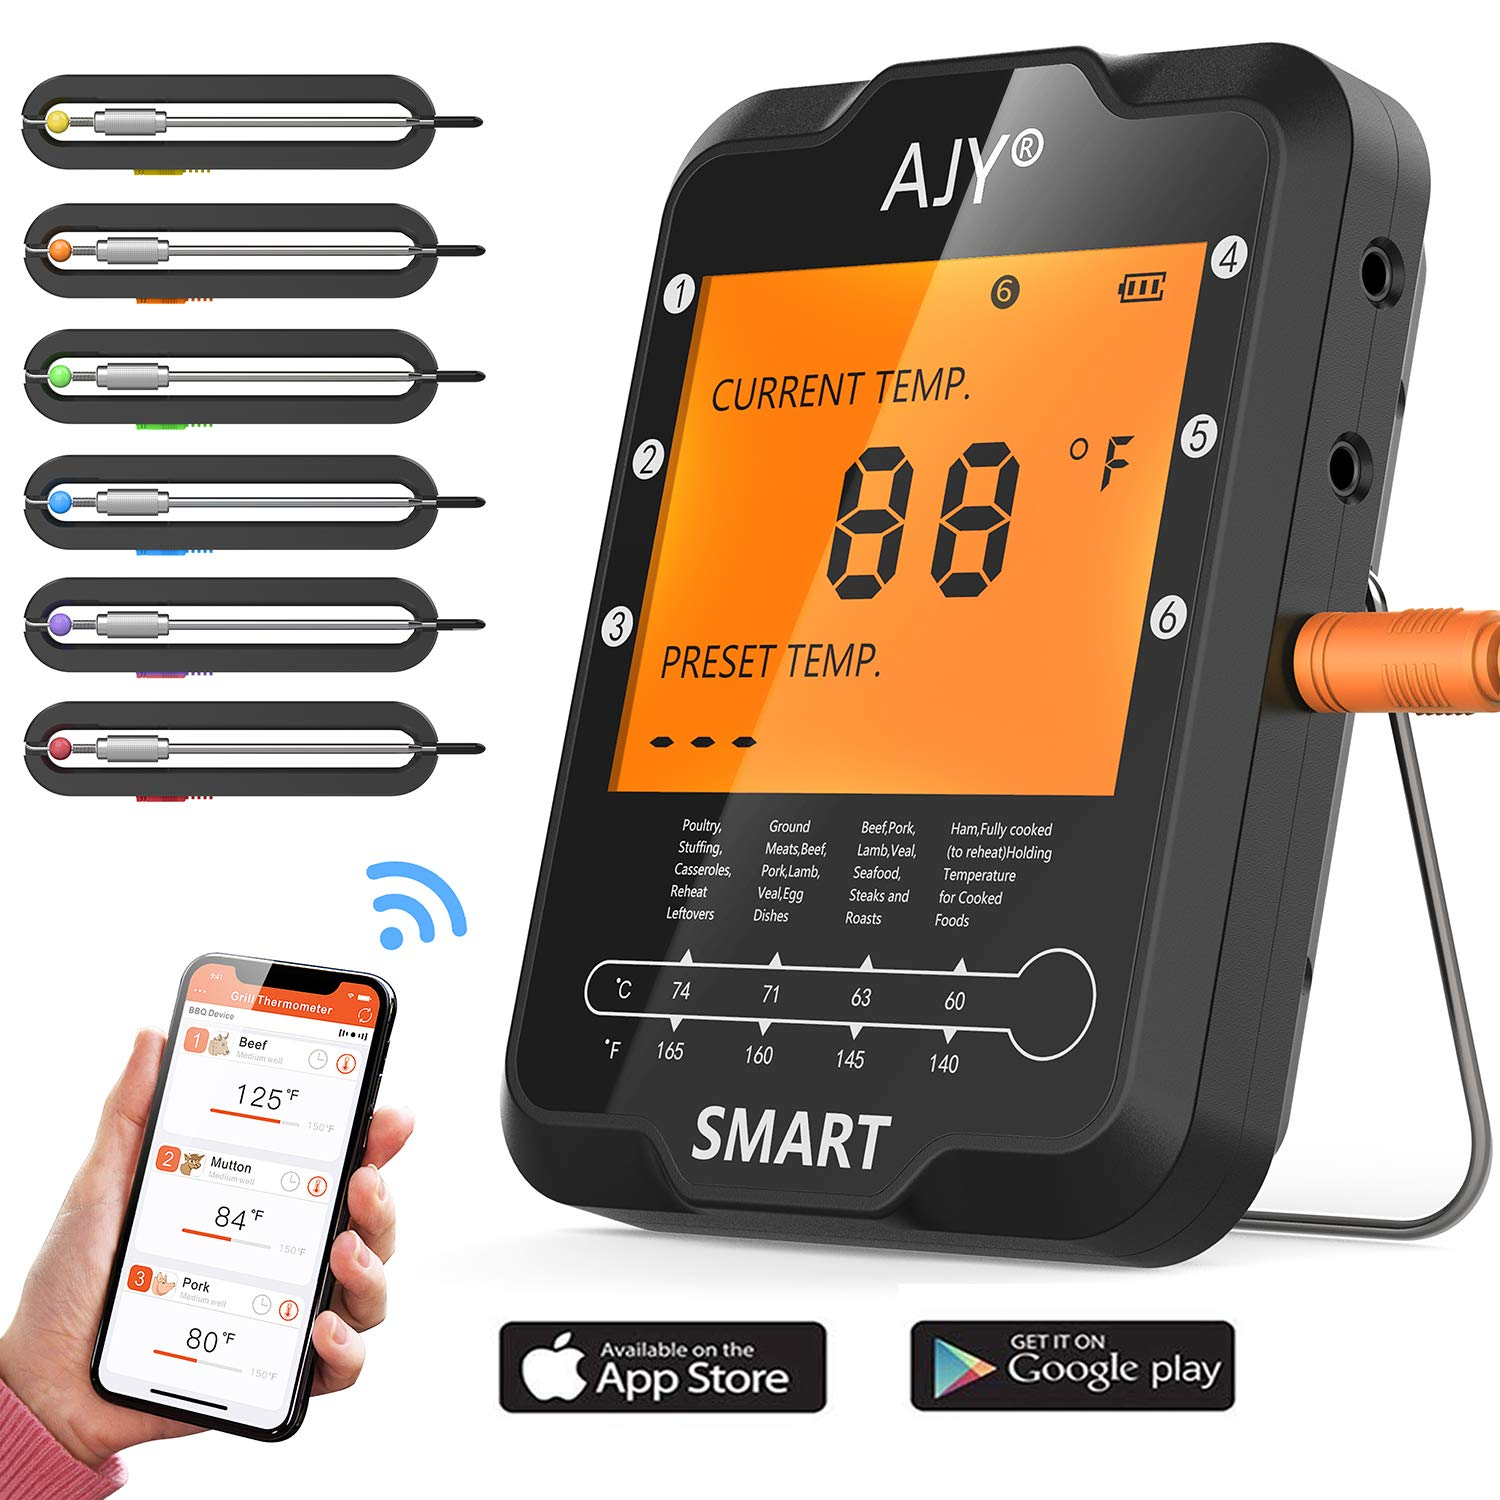 BBQ Meat Grill Thermometer,Smart Bluetooth Wireless Remote Digital Cooking Food Meat Thermometer with 6 Probe for Smoker Grill BBQ Thermometer support ios & Android, 328Feet. by AJY